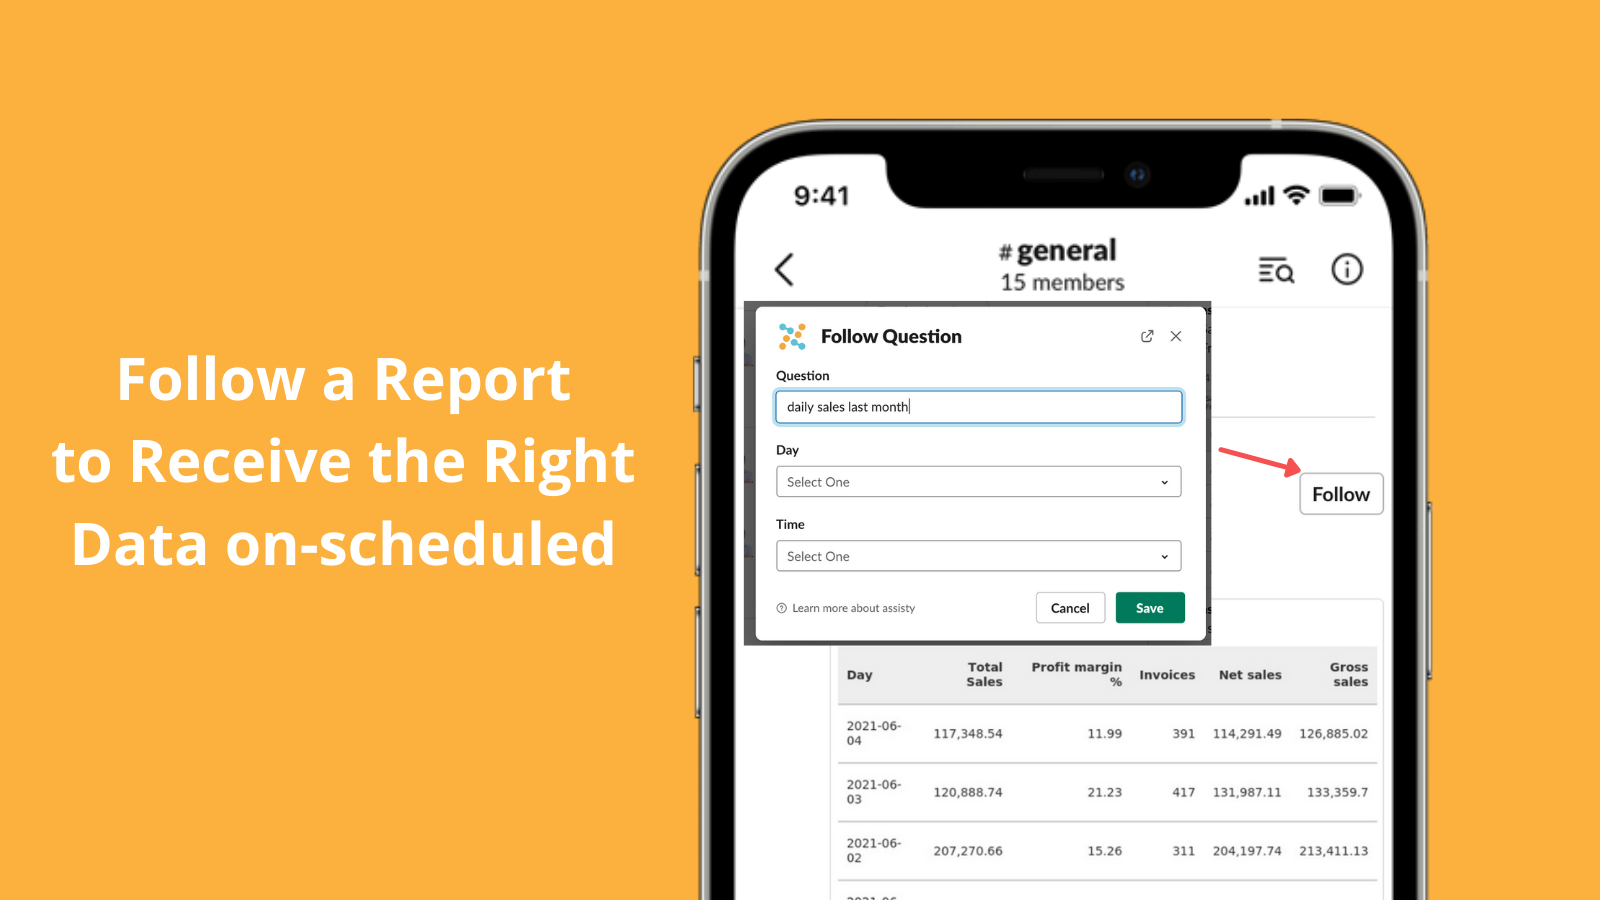 You can schedule a report by follow a question